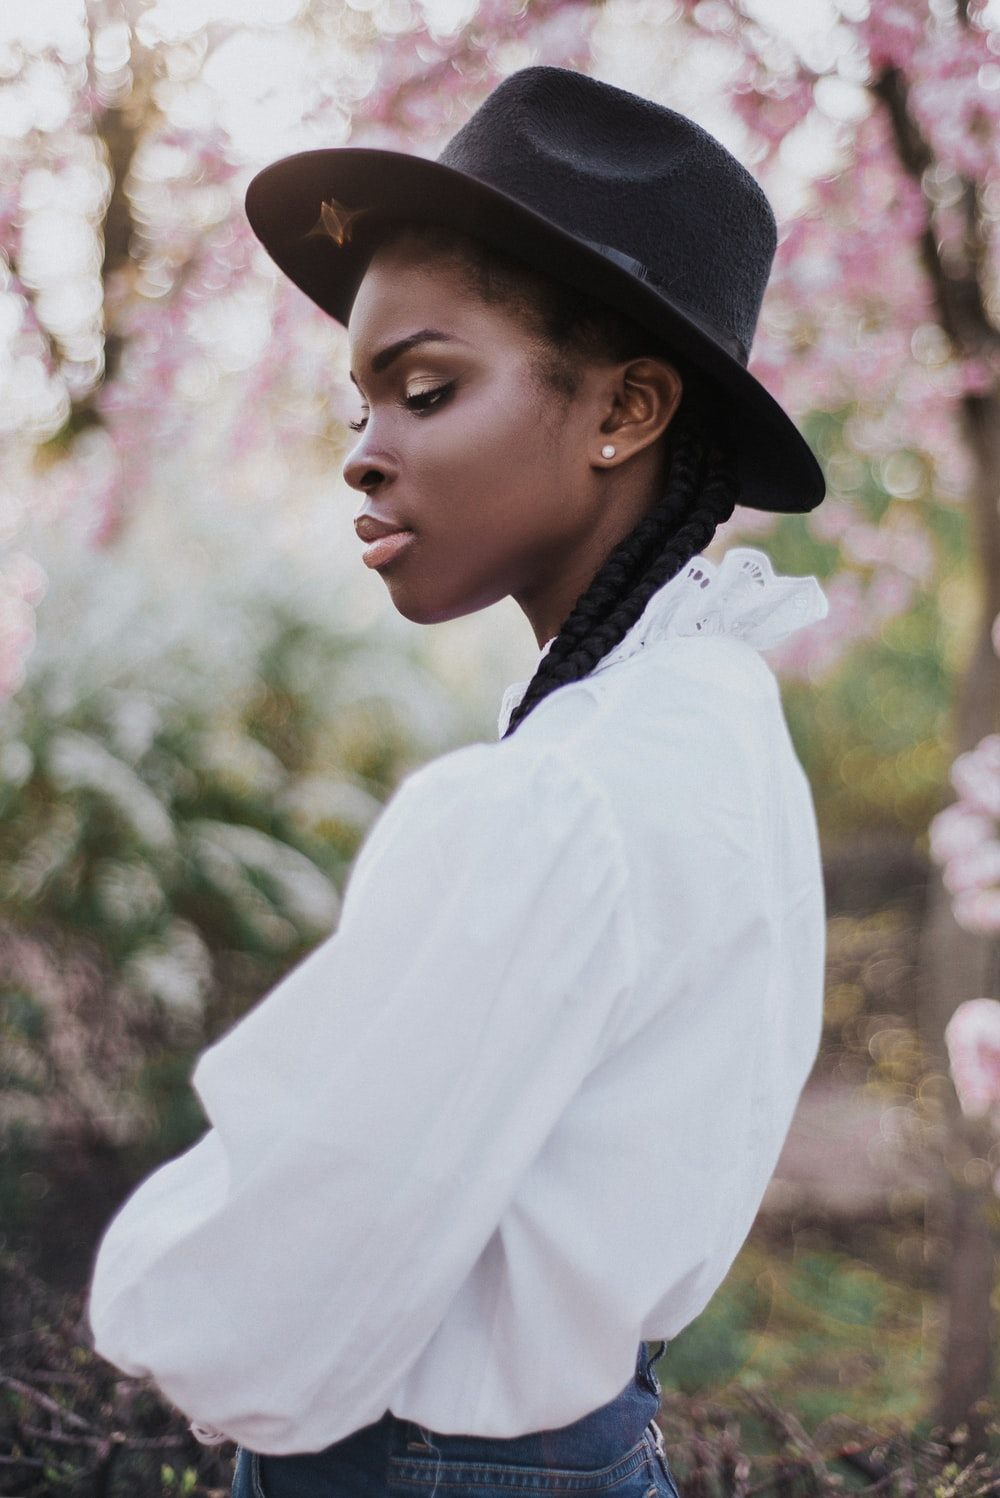 woman in white long sleeve shirt and black hat